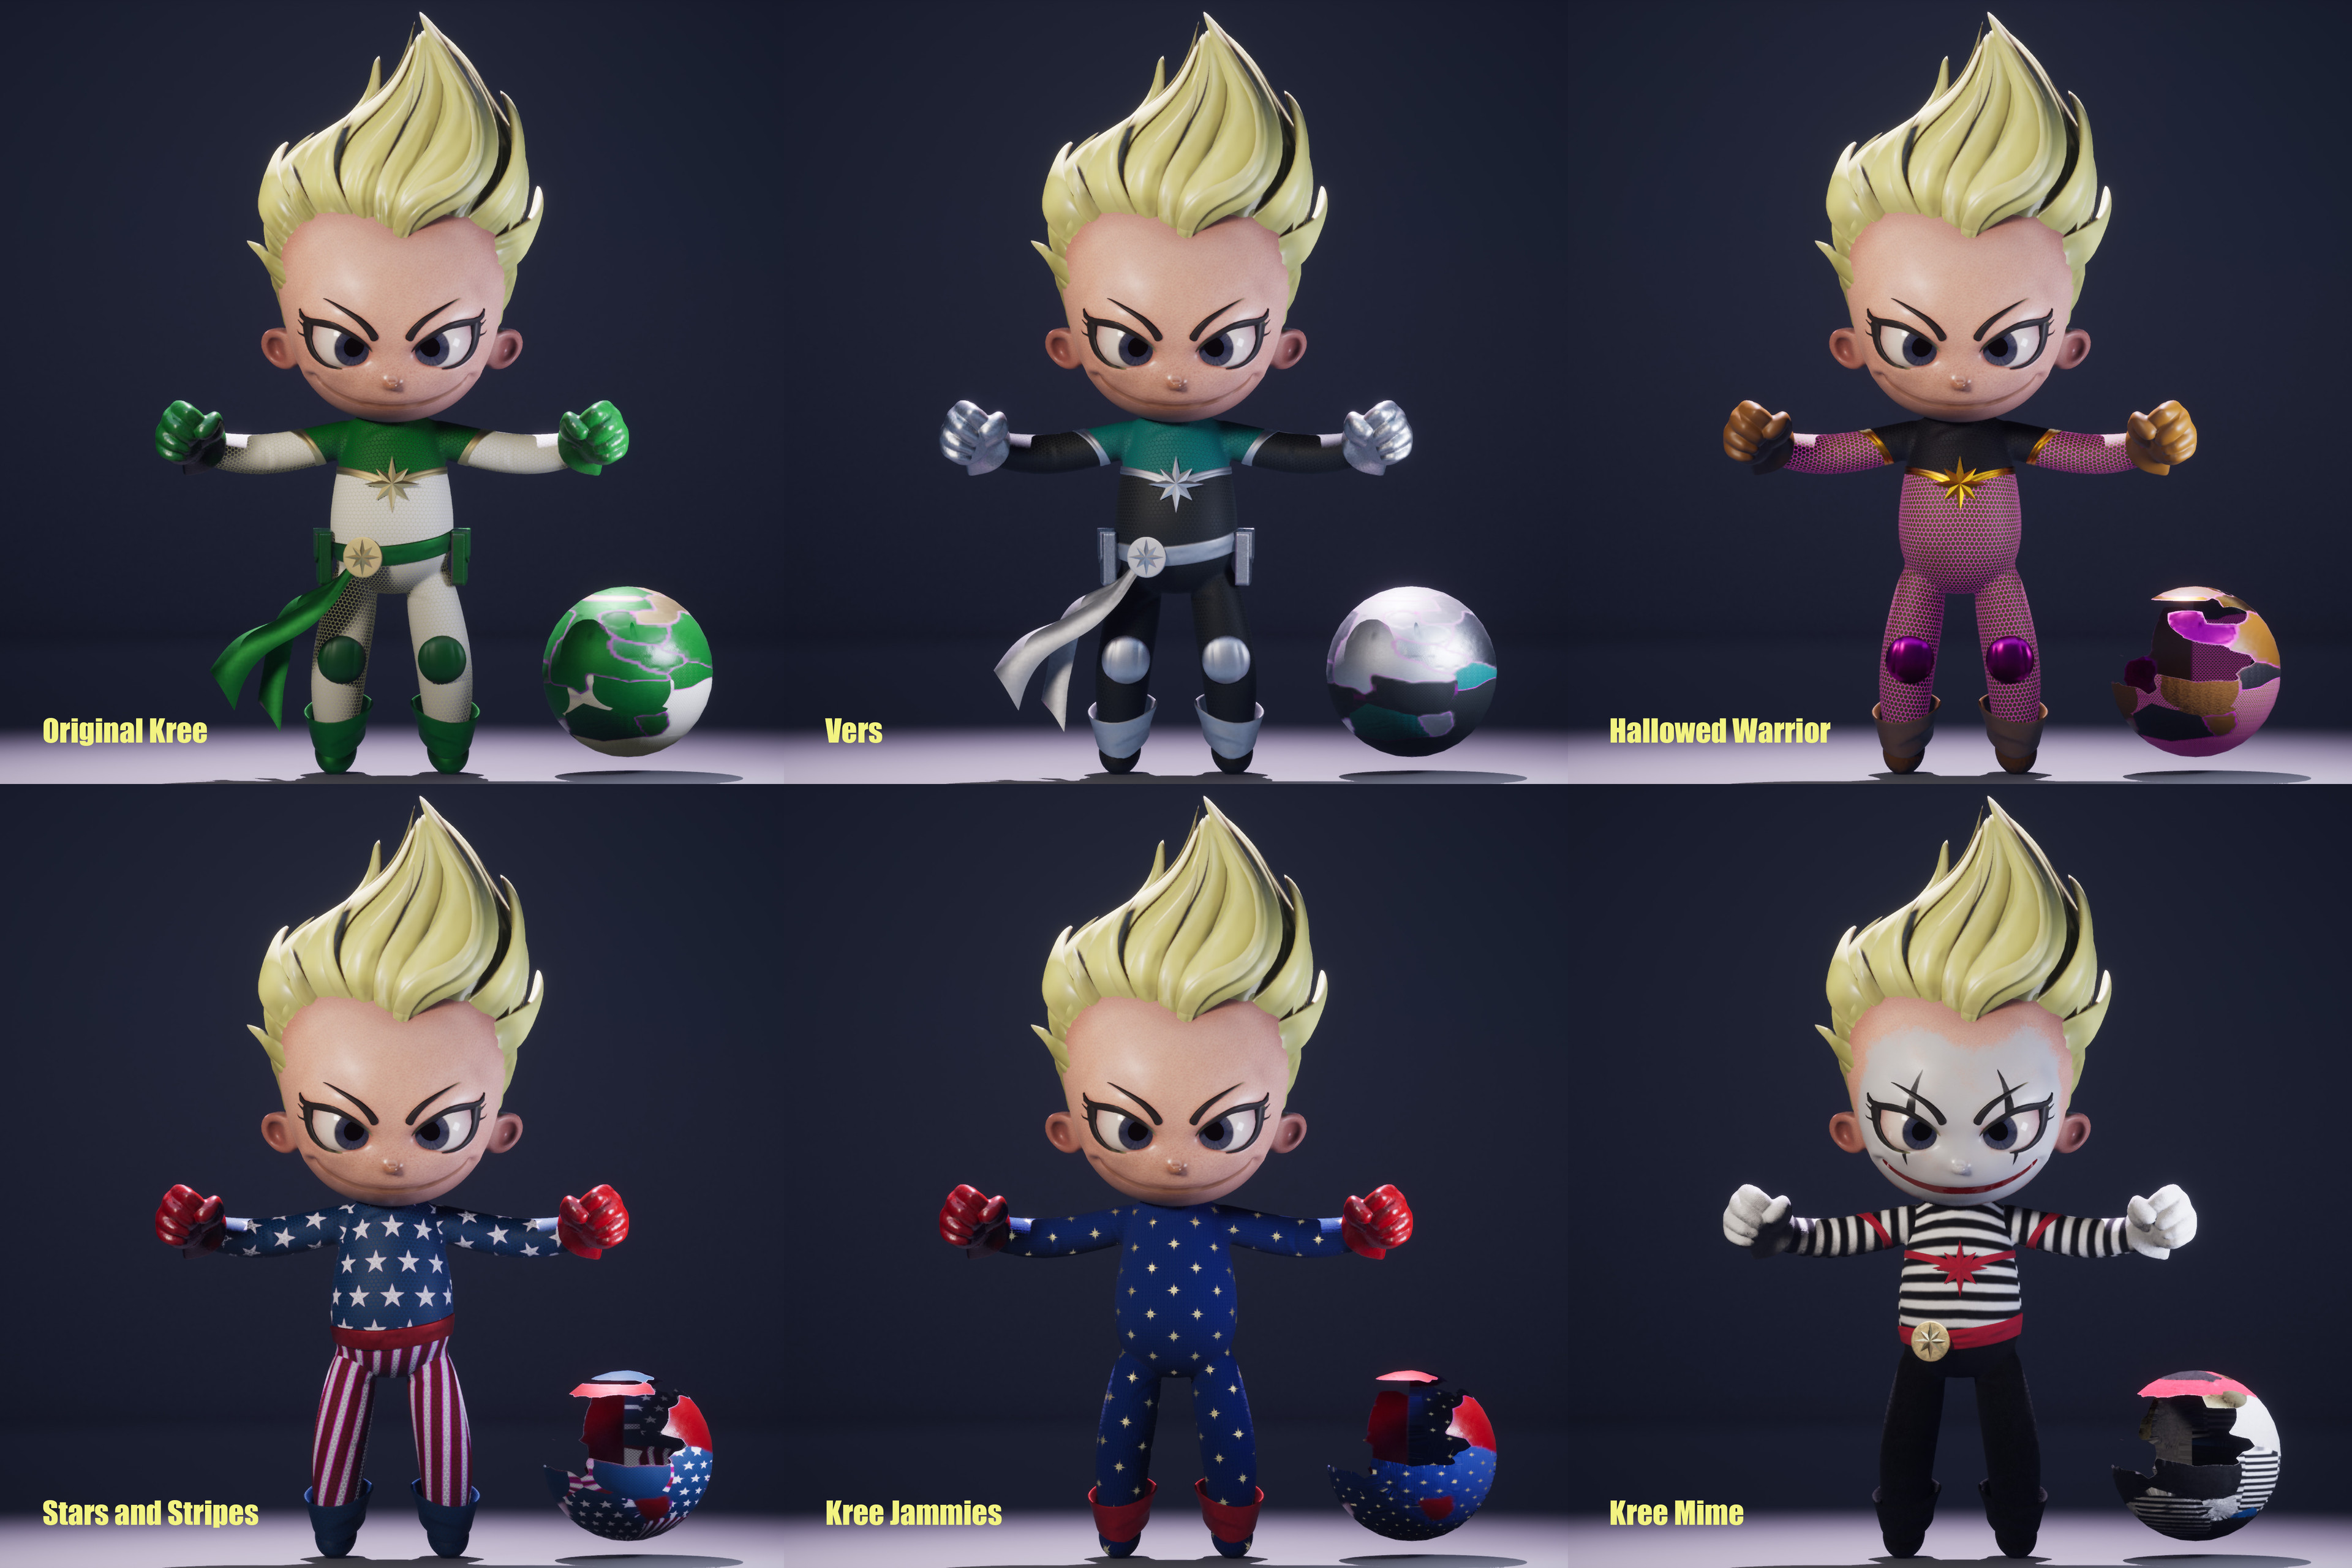 Suit material was designed for the easy creation of different skins. These are some of the examples I came up with